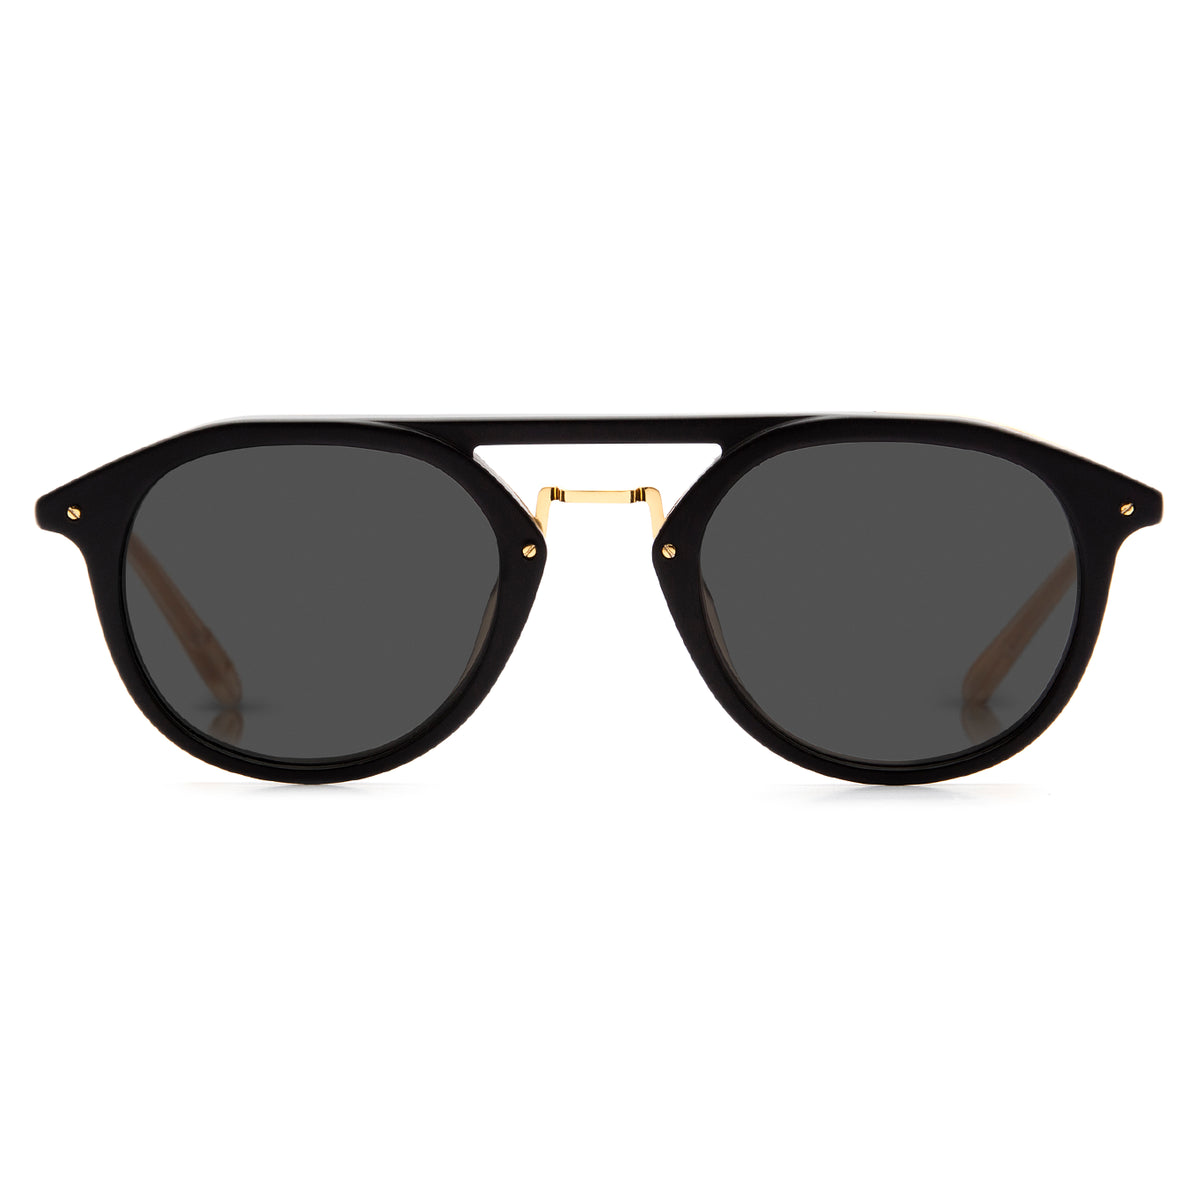 GRAVIER | Matte Black Polarized 24K | Handcrafted acetate aviator Sunglasses with 24K gold detailing.